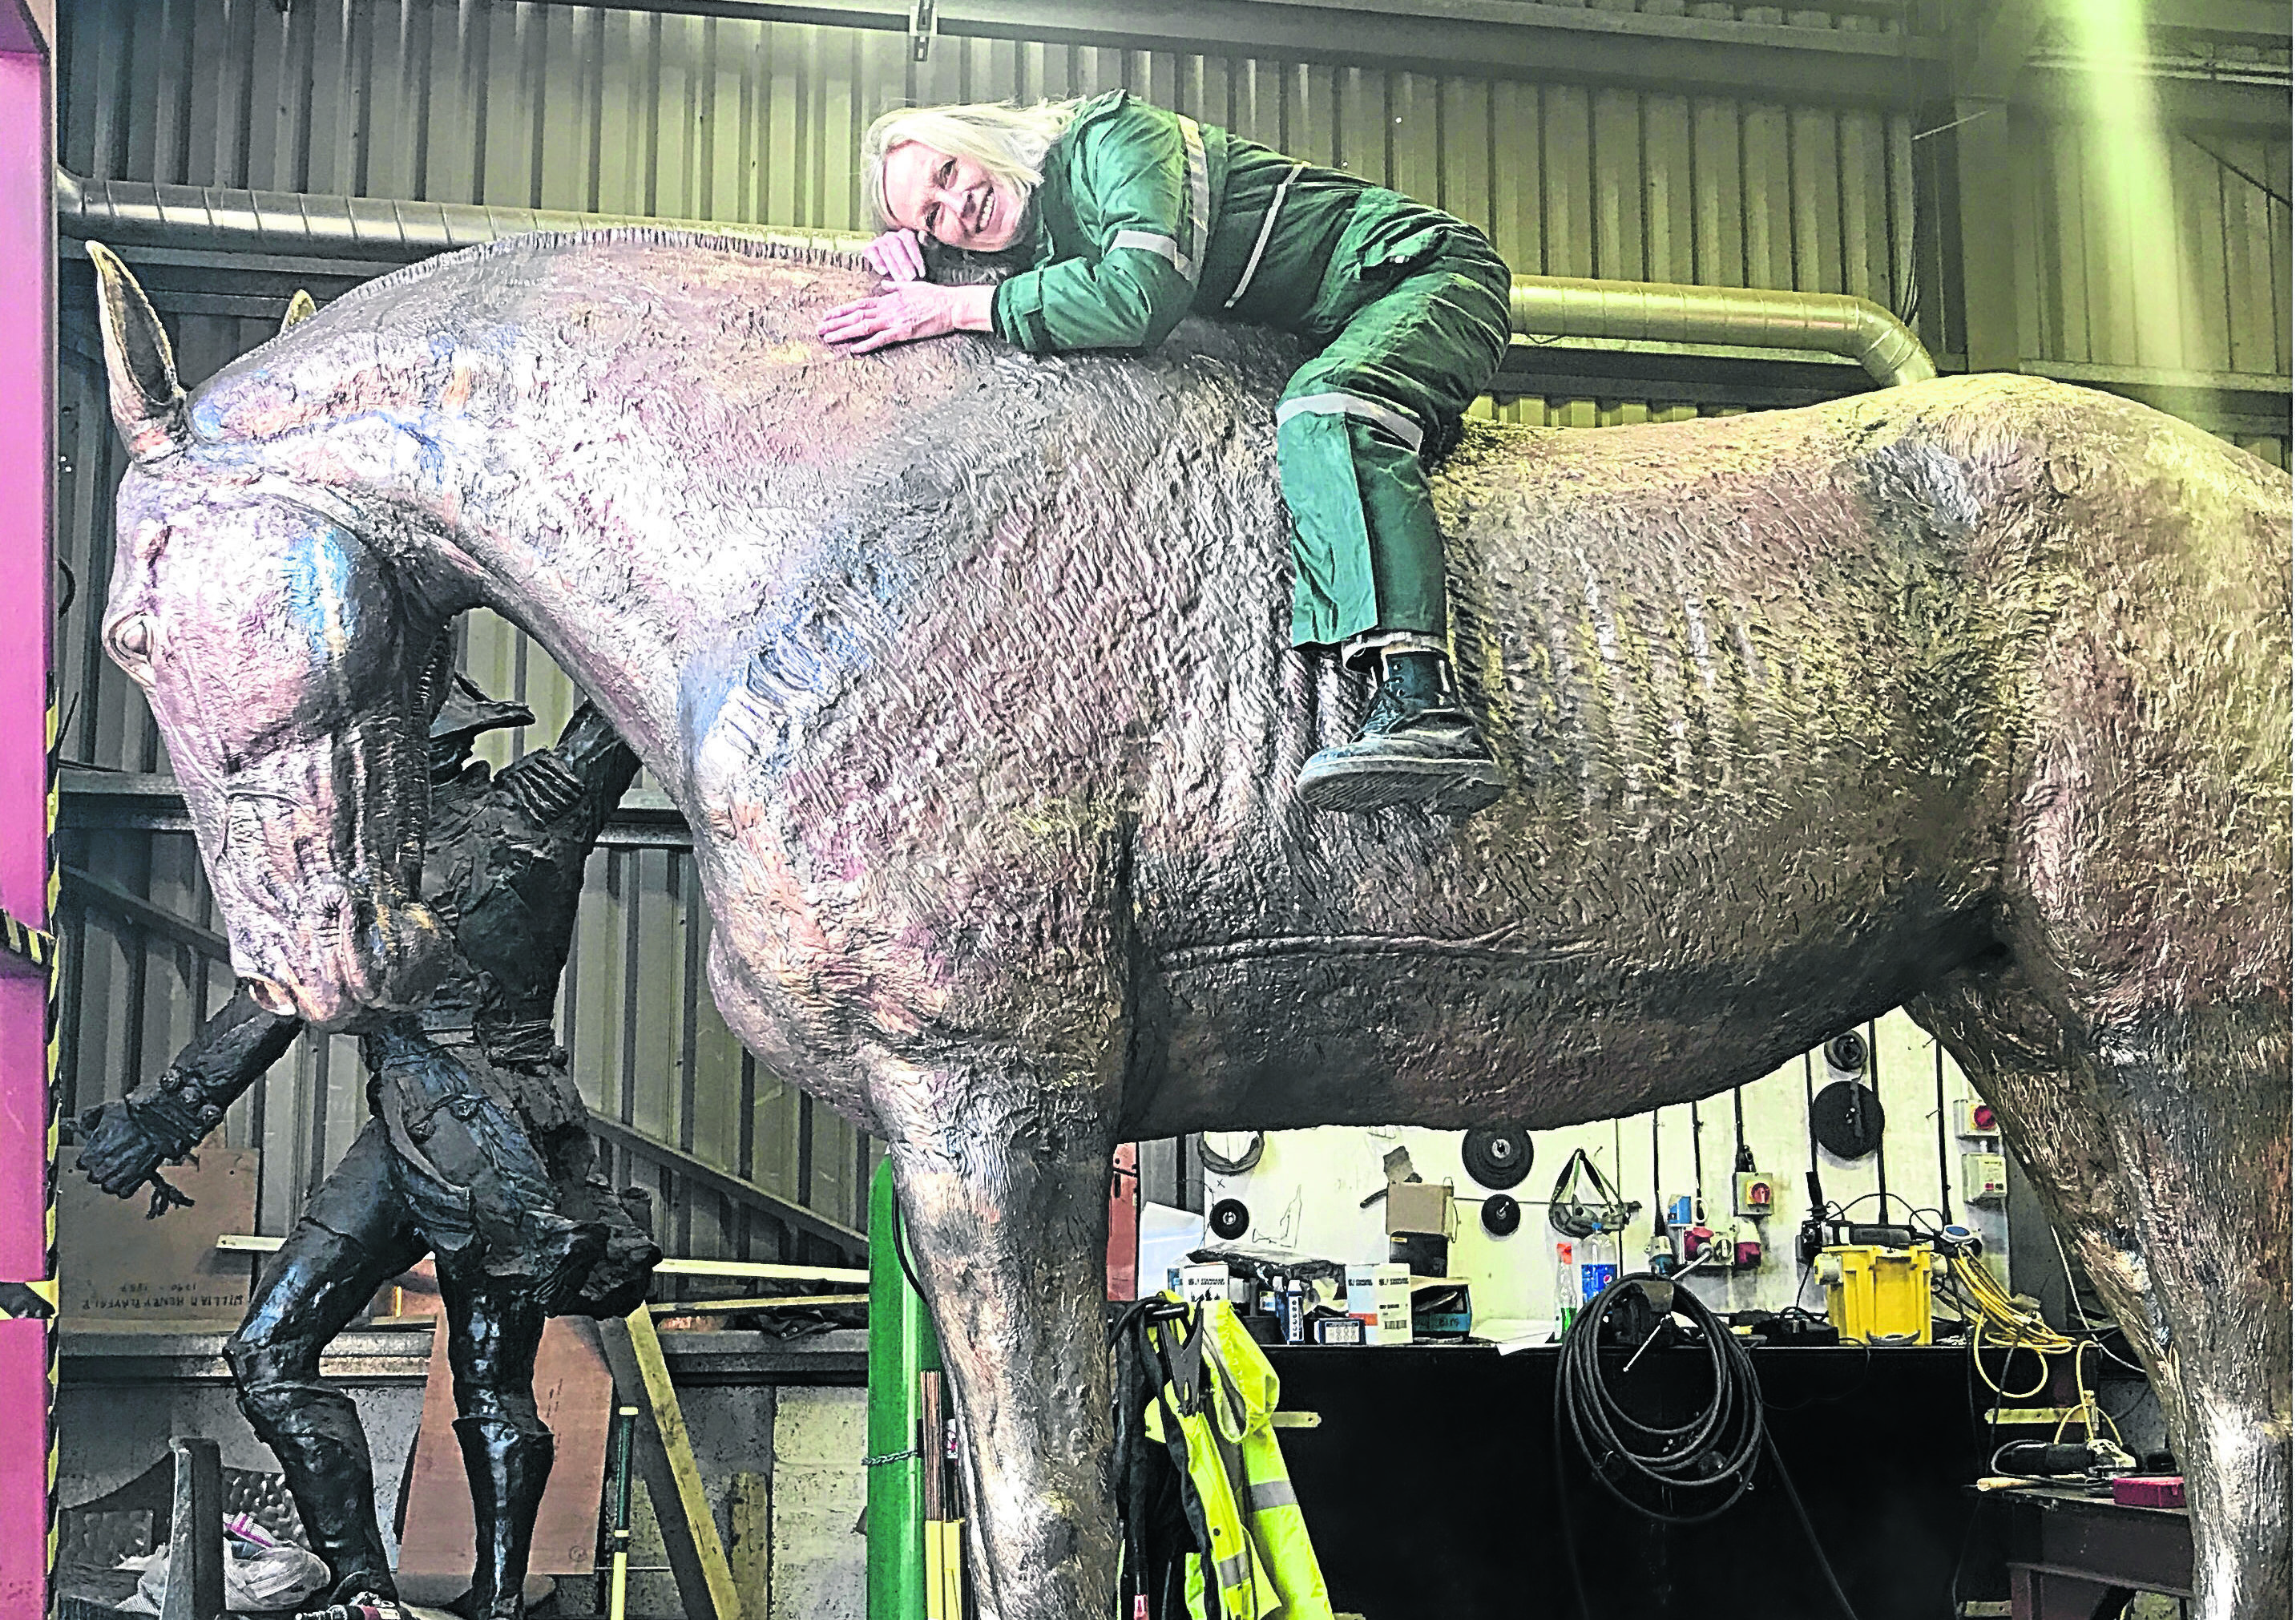 The sculptor Susan Leyland on the horse.